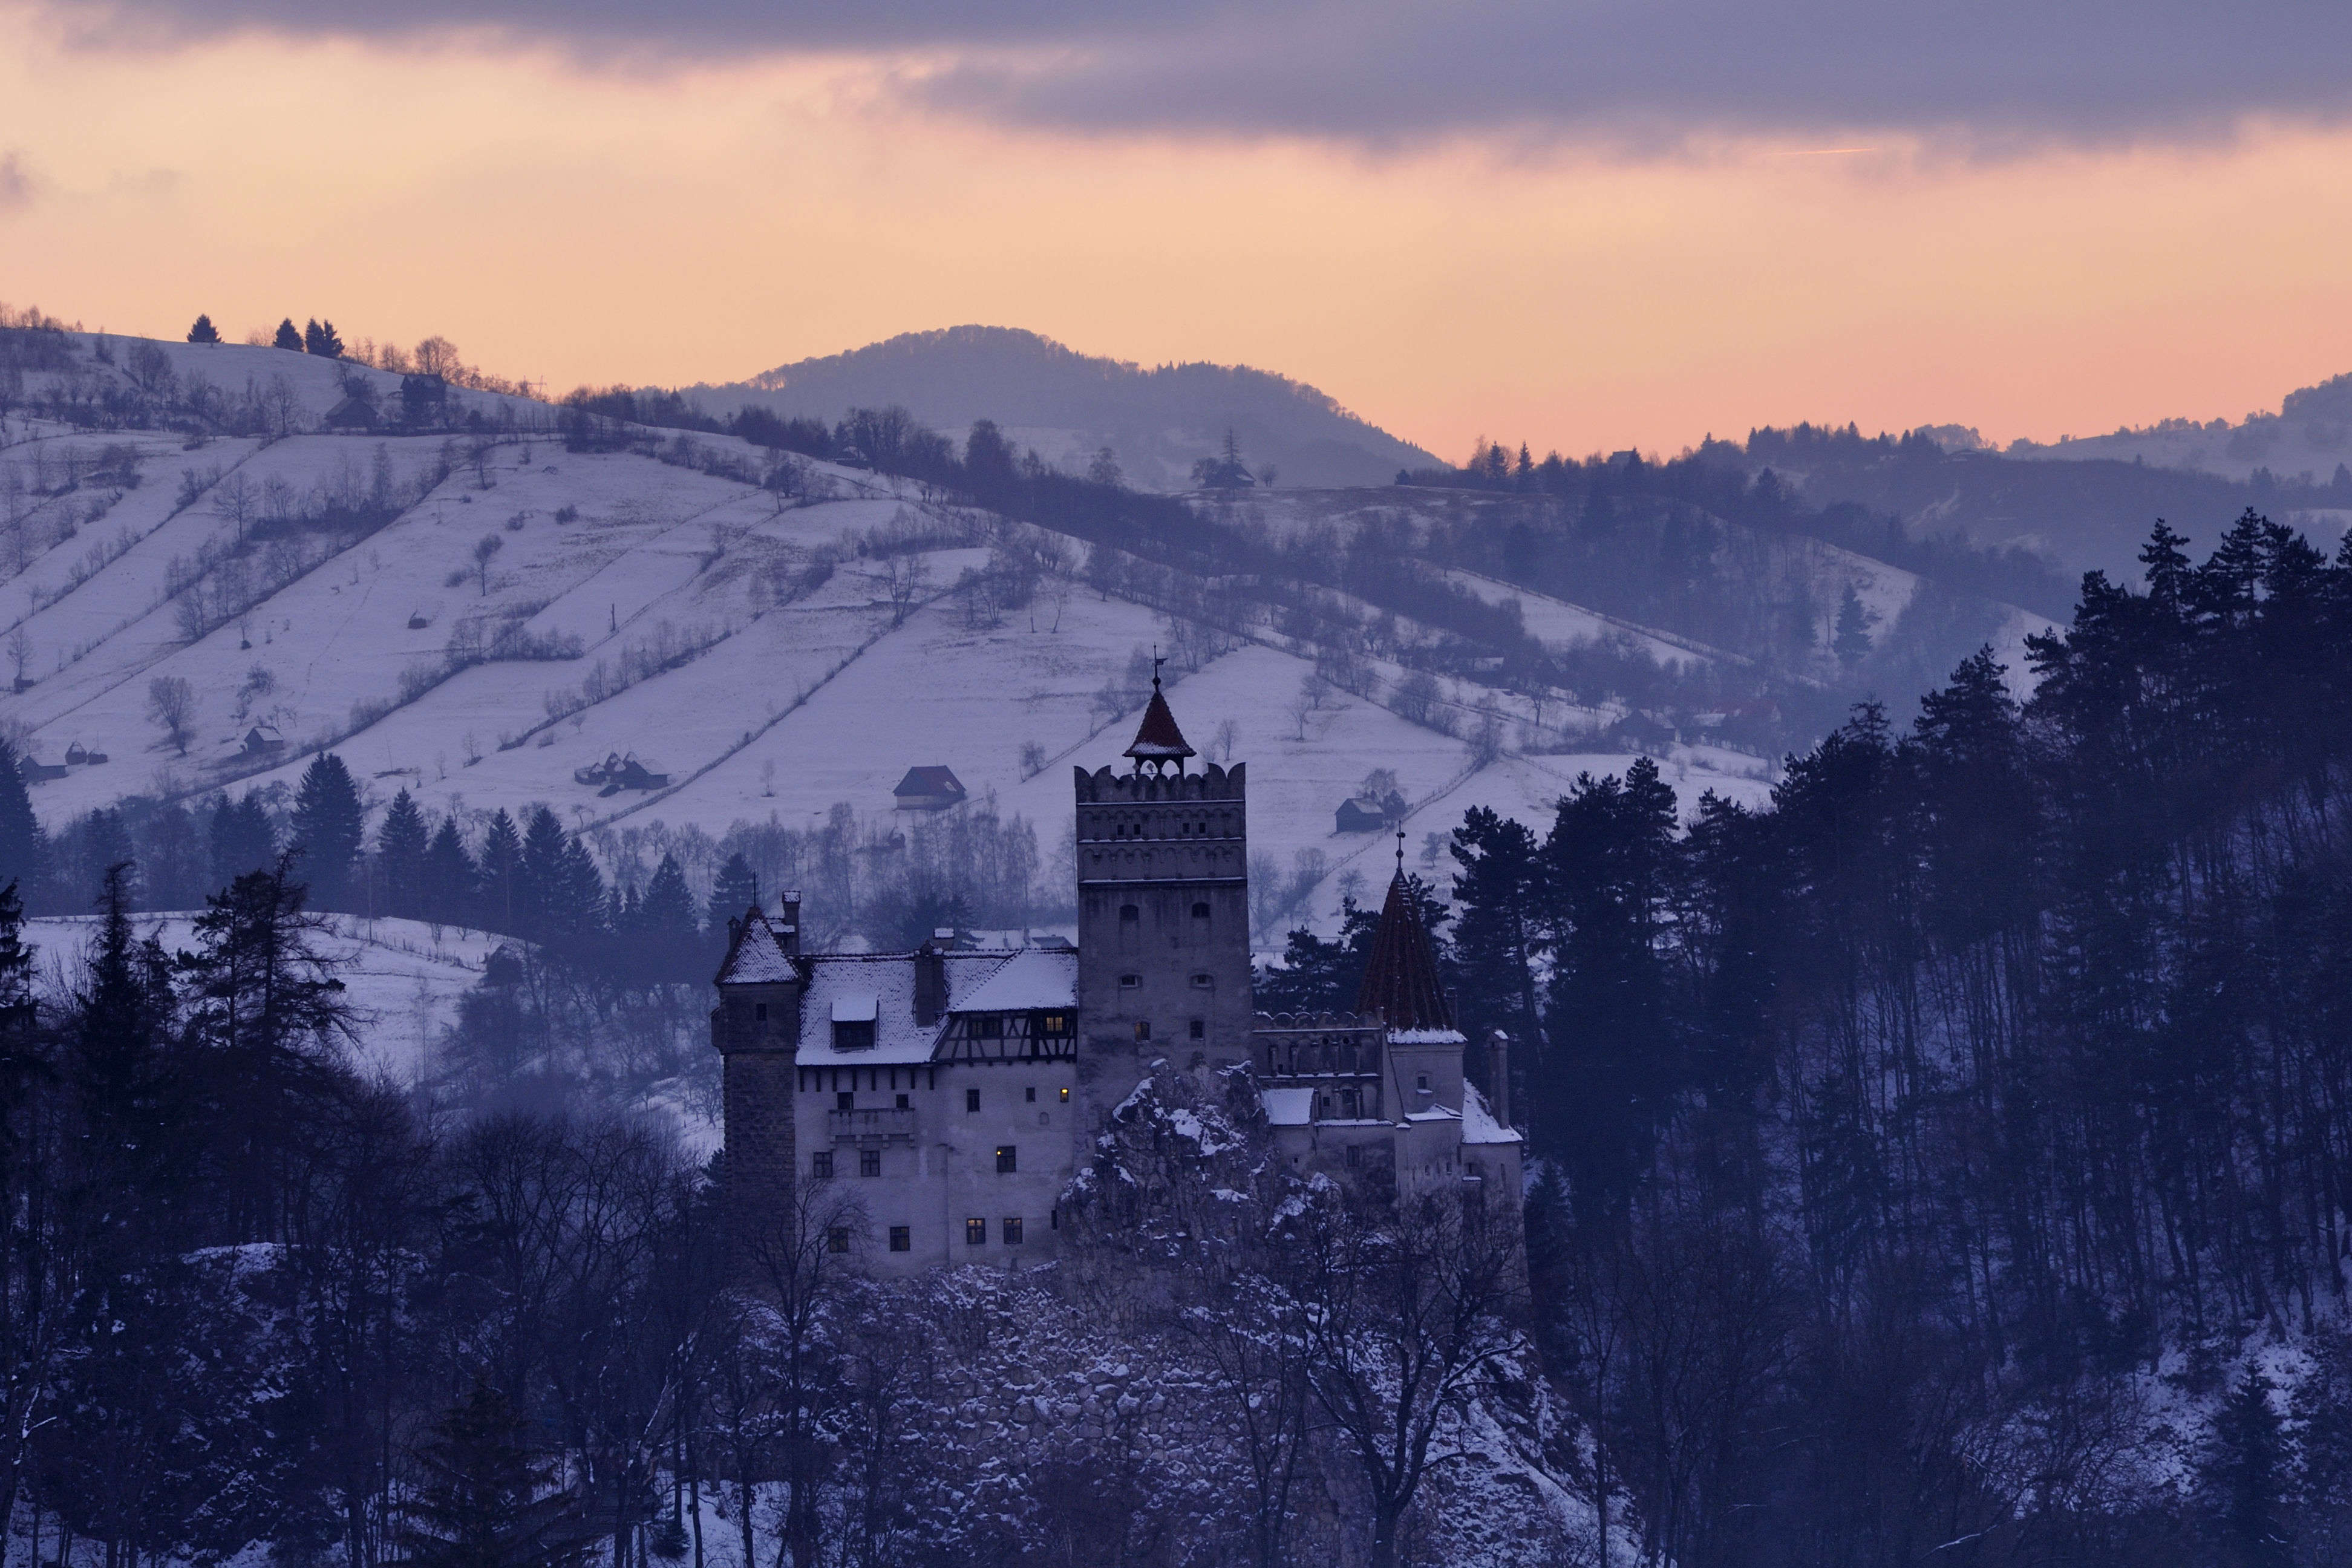 A day with the vampire—come see Dracula's castle in Romania